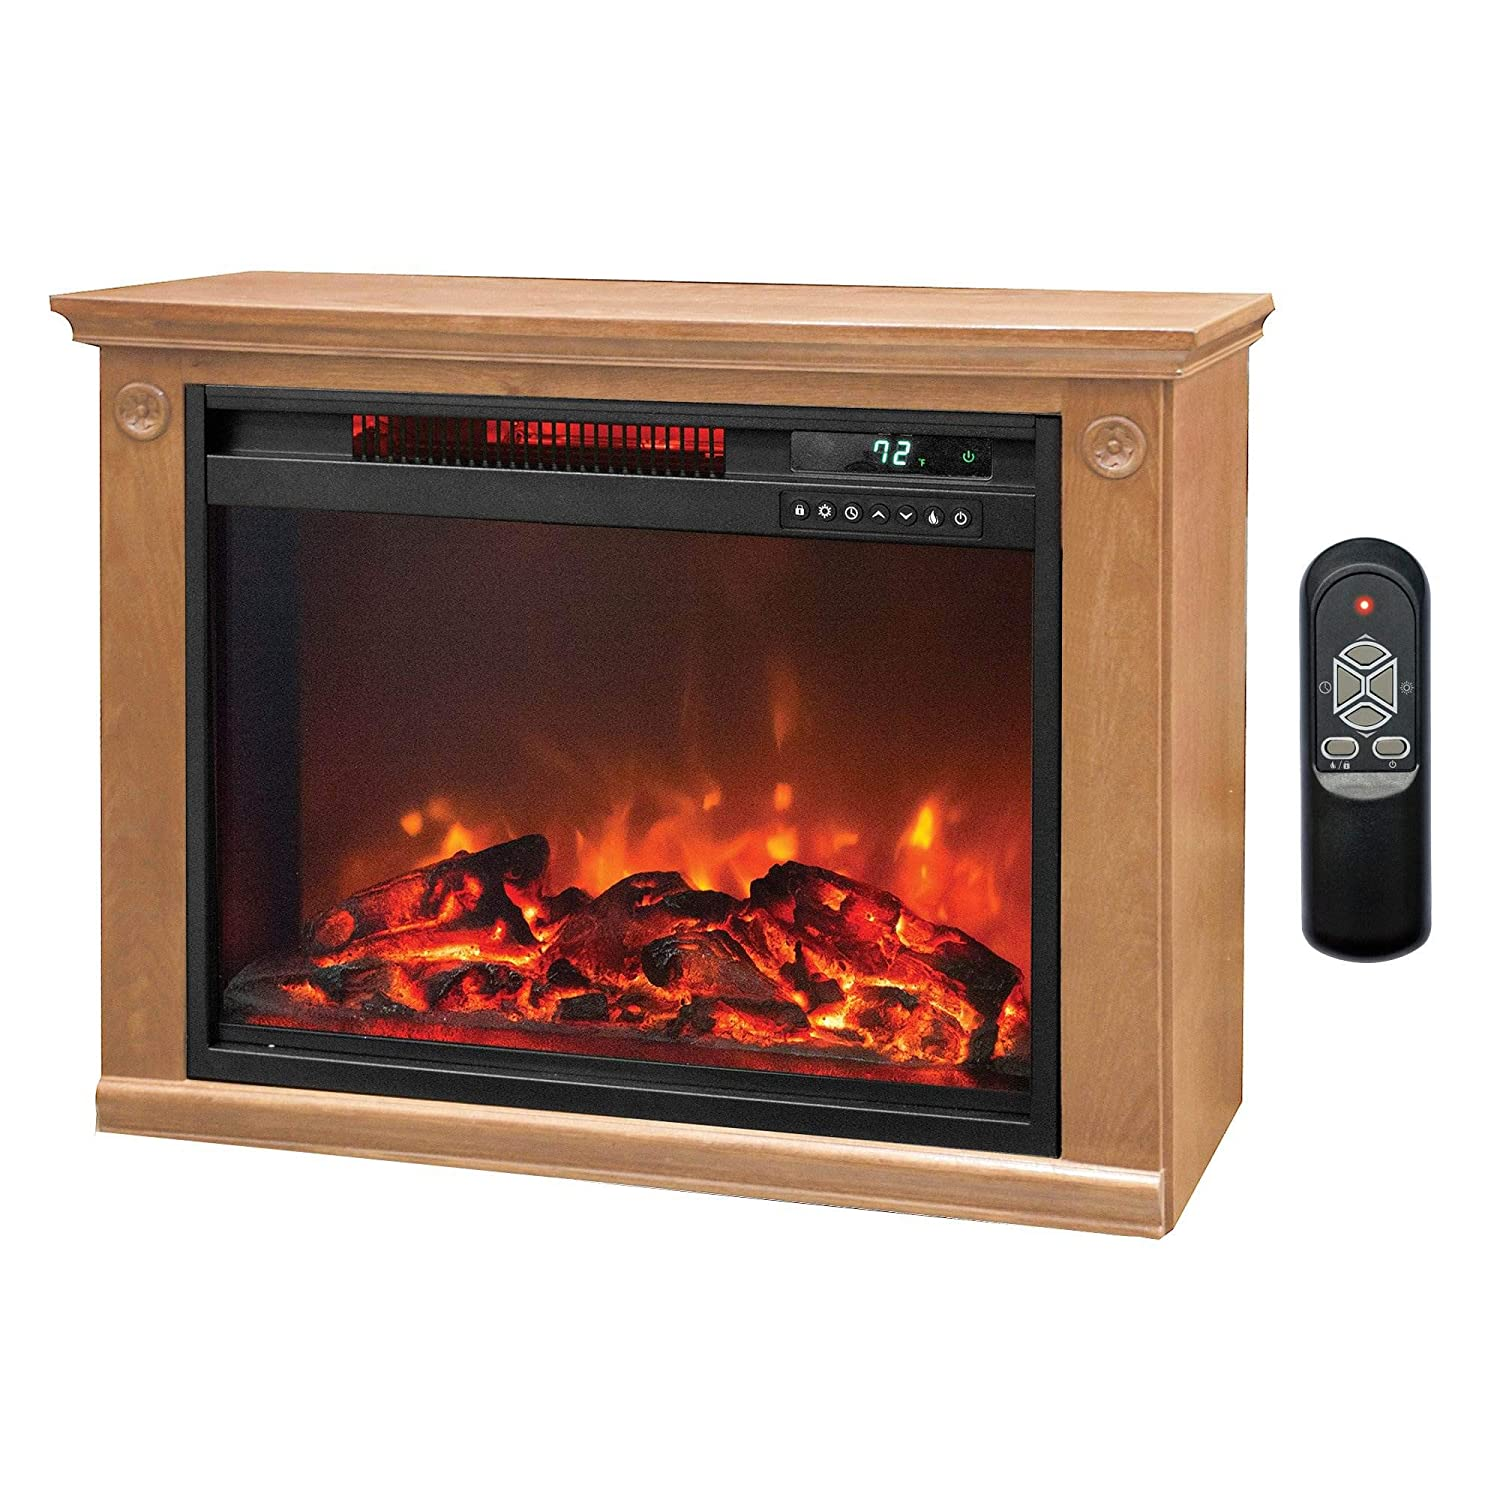 Lifesmart 3 Element Quartz Infrared Electric Portable Fireplace Space Heater